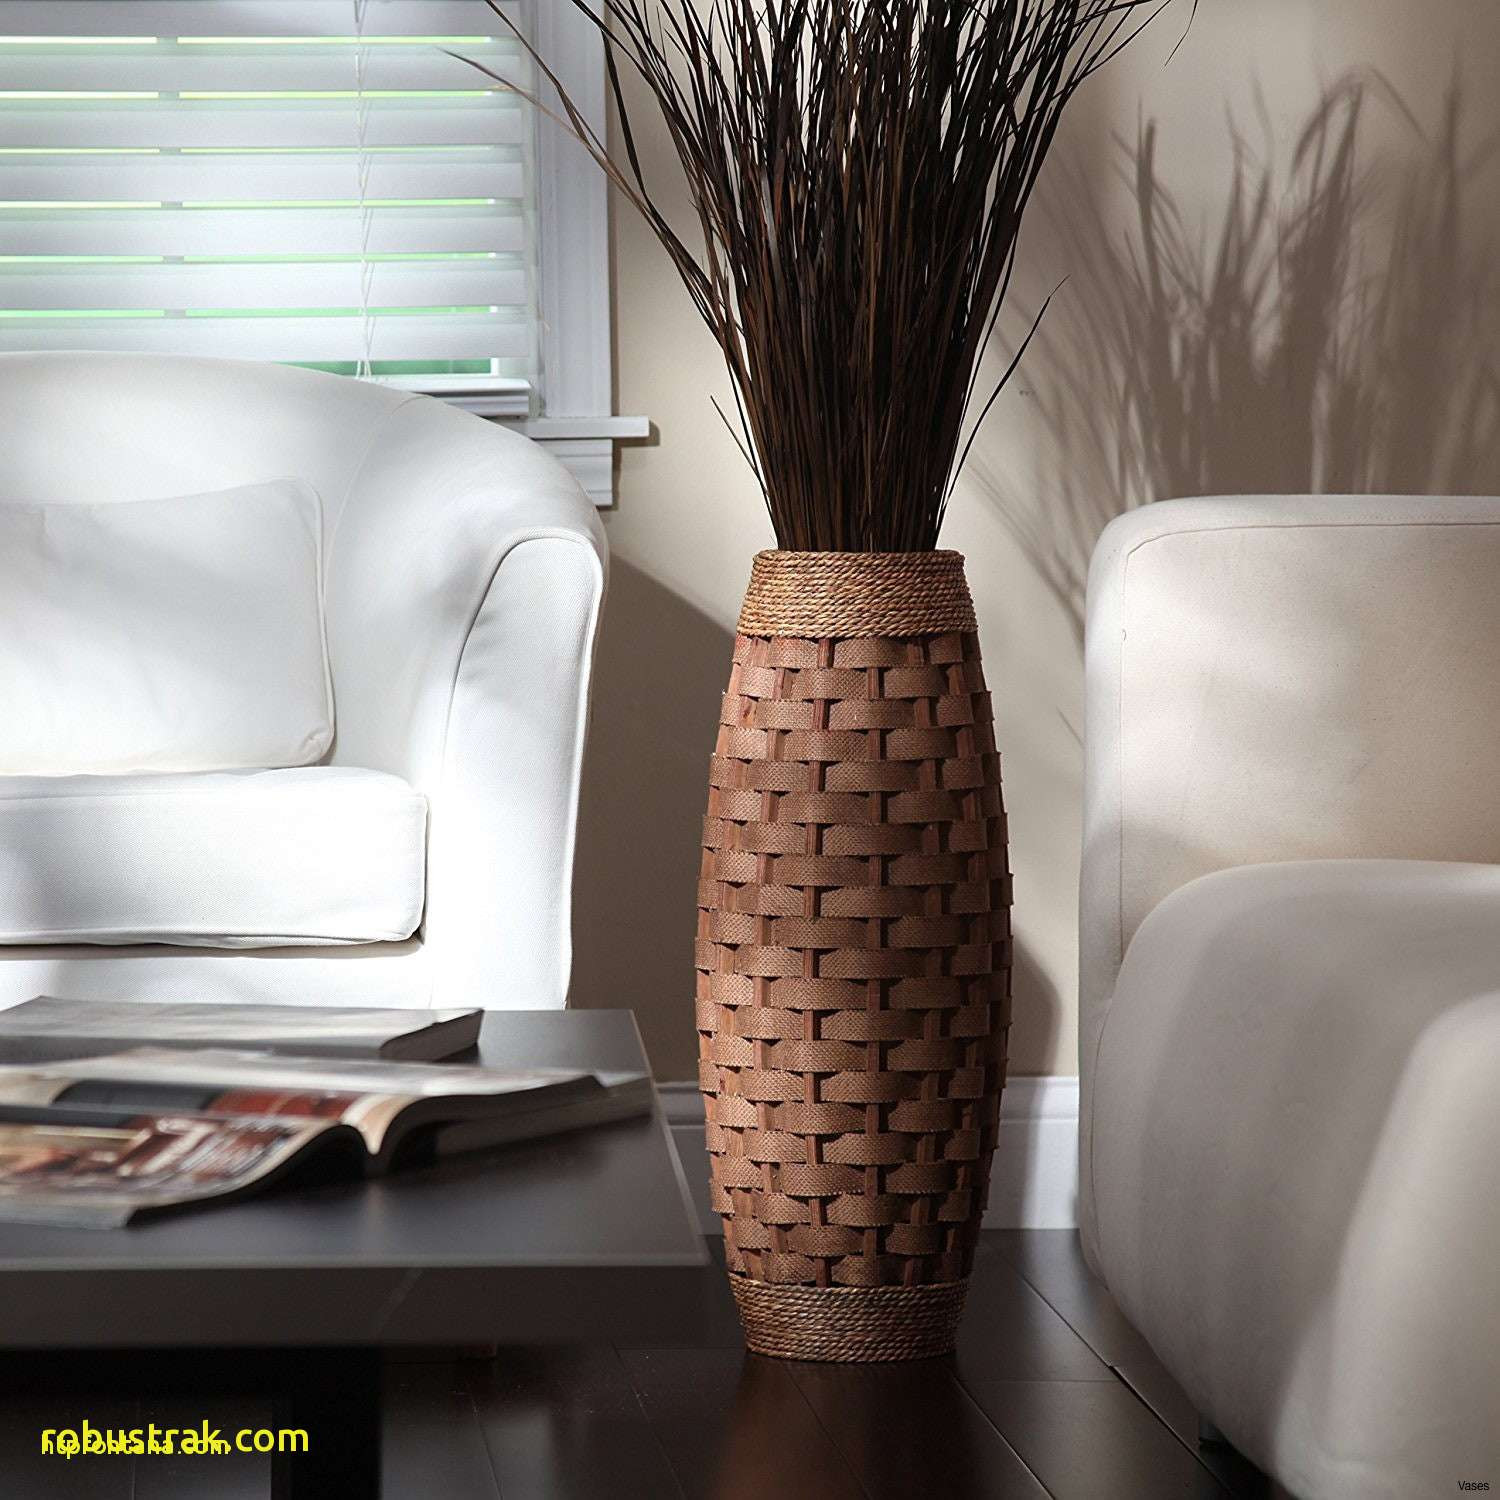 Large Vase Filler Ideas Of New Floor Vase with Branches Home Design Ideas Throughout Modern Living Room Vases Elegant 24 Floor Vases Ideas for Stylish Home Decor Coverh D Cori